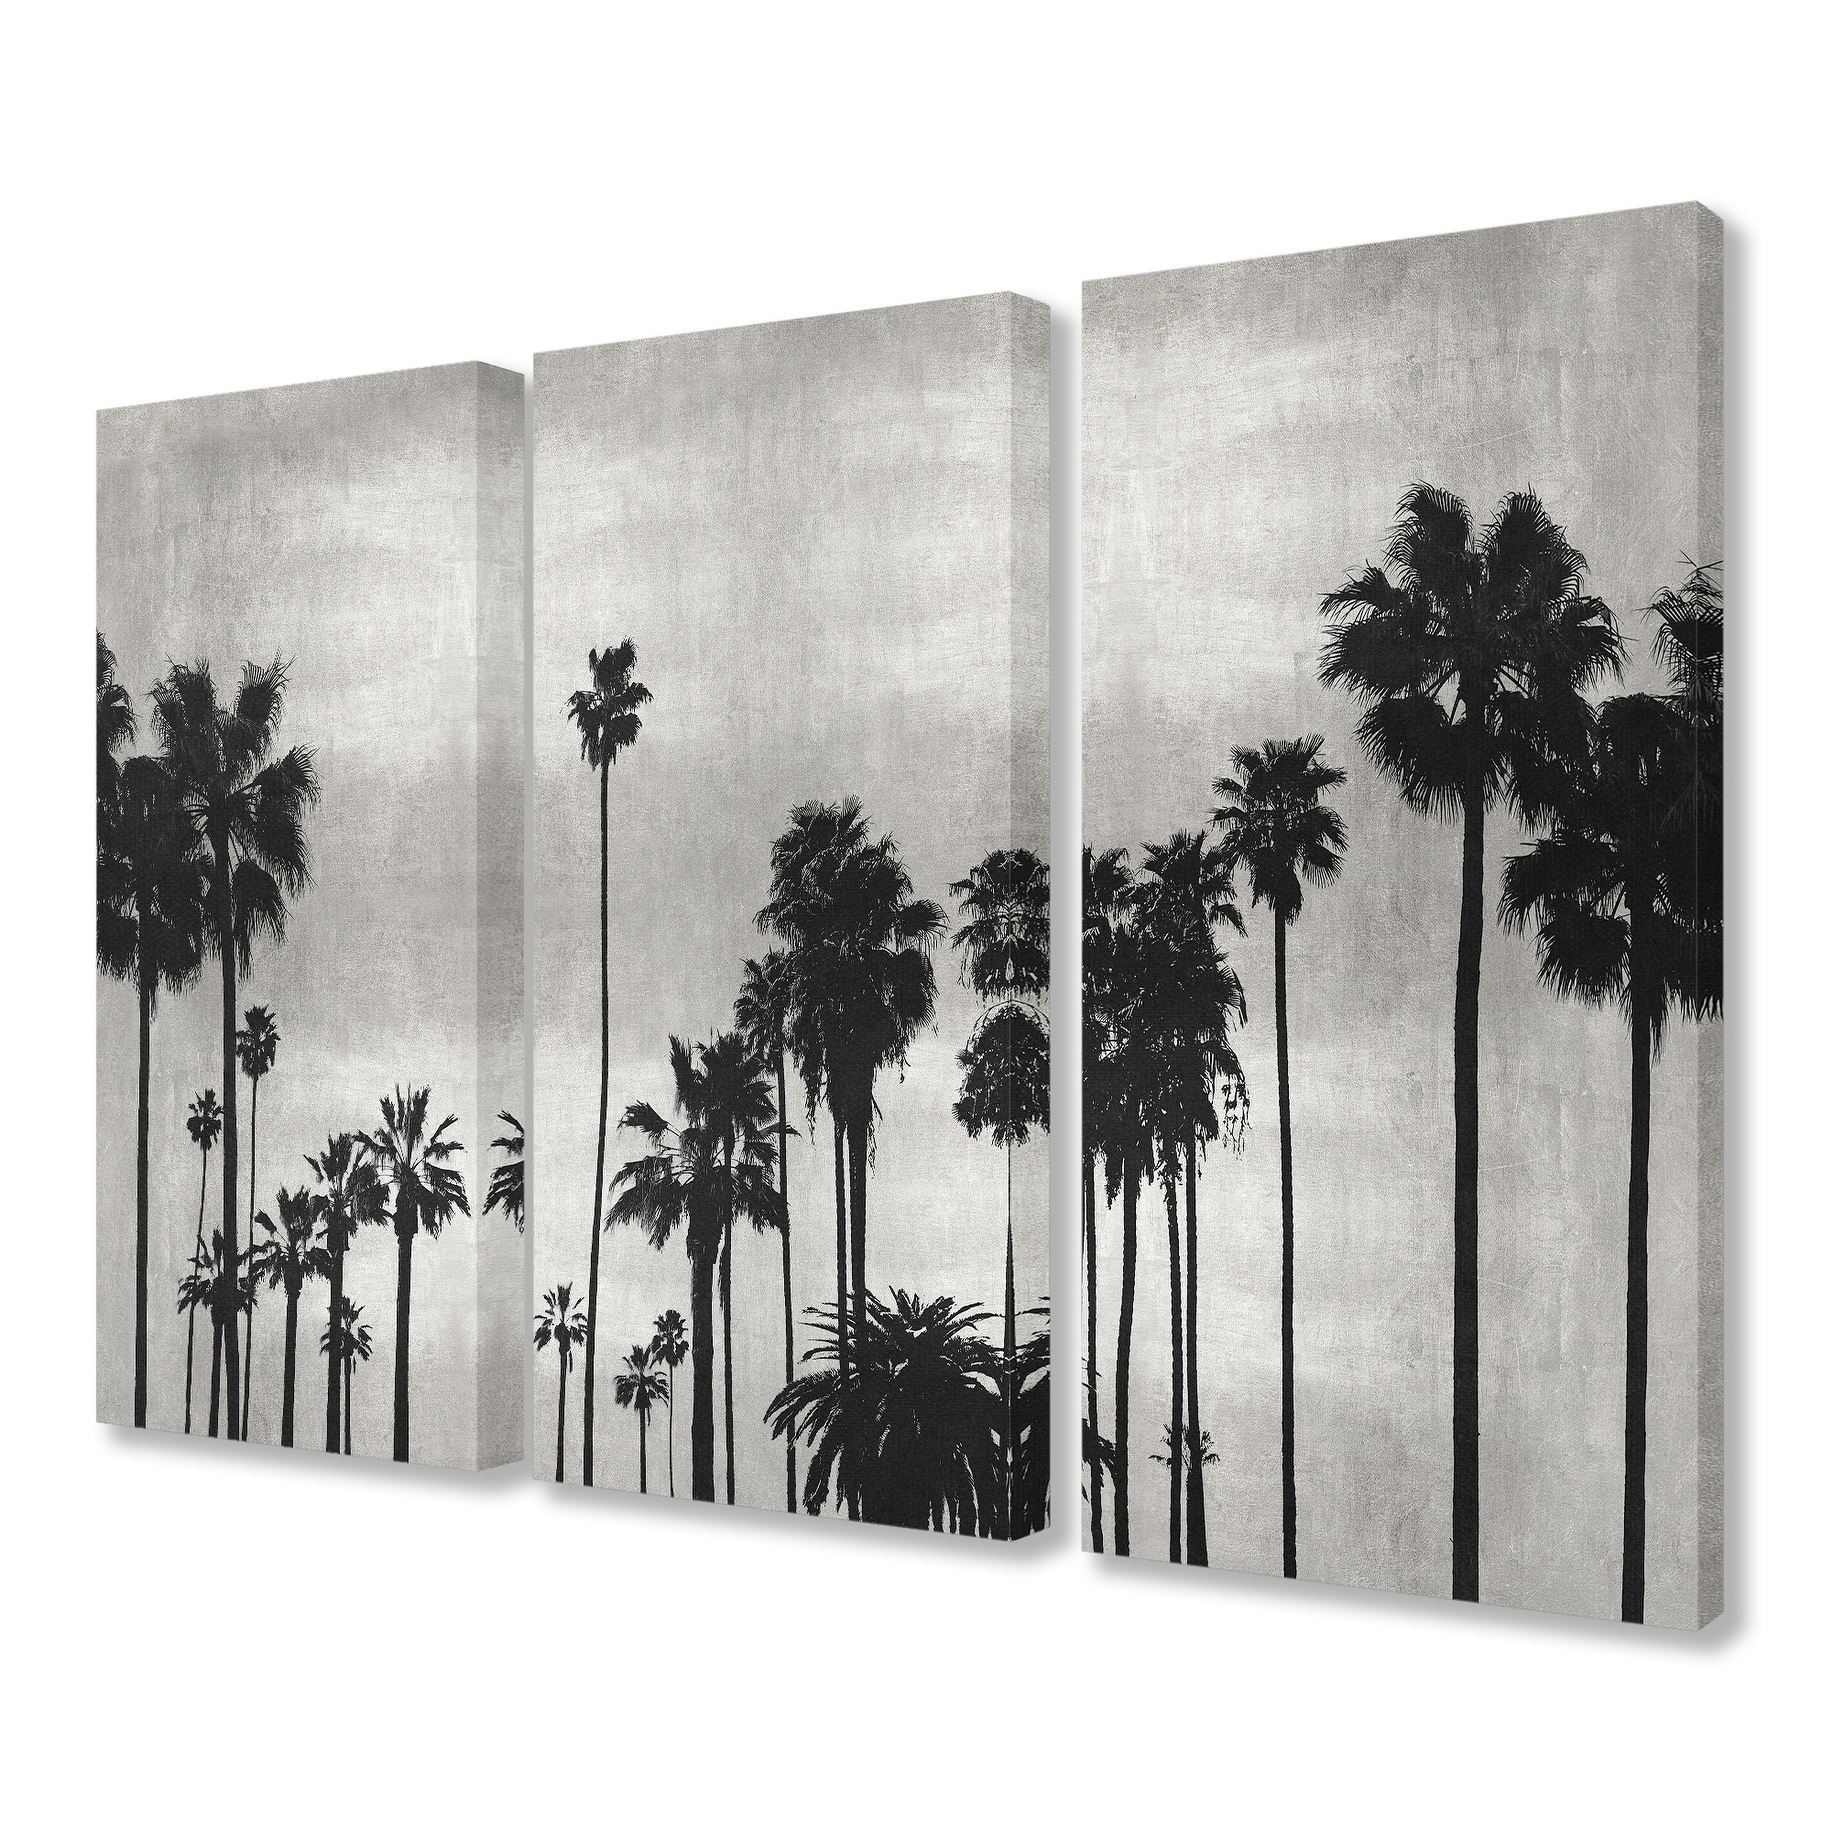 Shop the stupell home décor collection black and white photography palm tree scene canvas 16 x 1 5 x 24 made in the usa free shipping today overstock